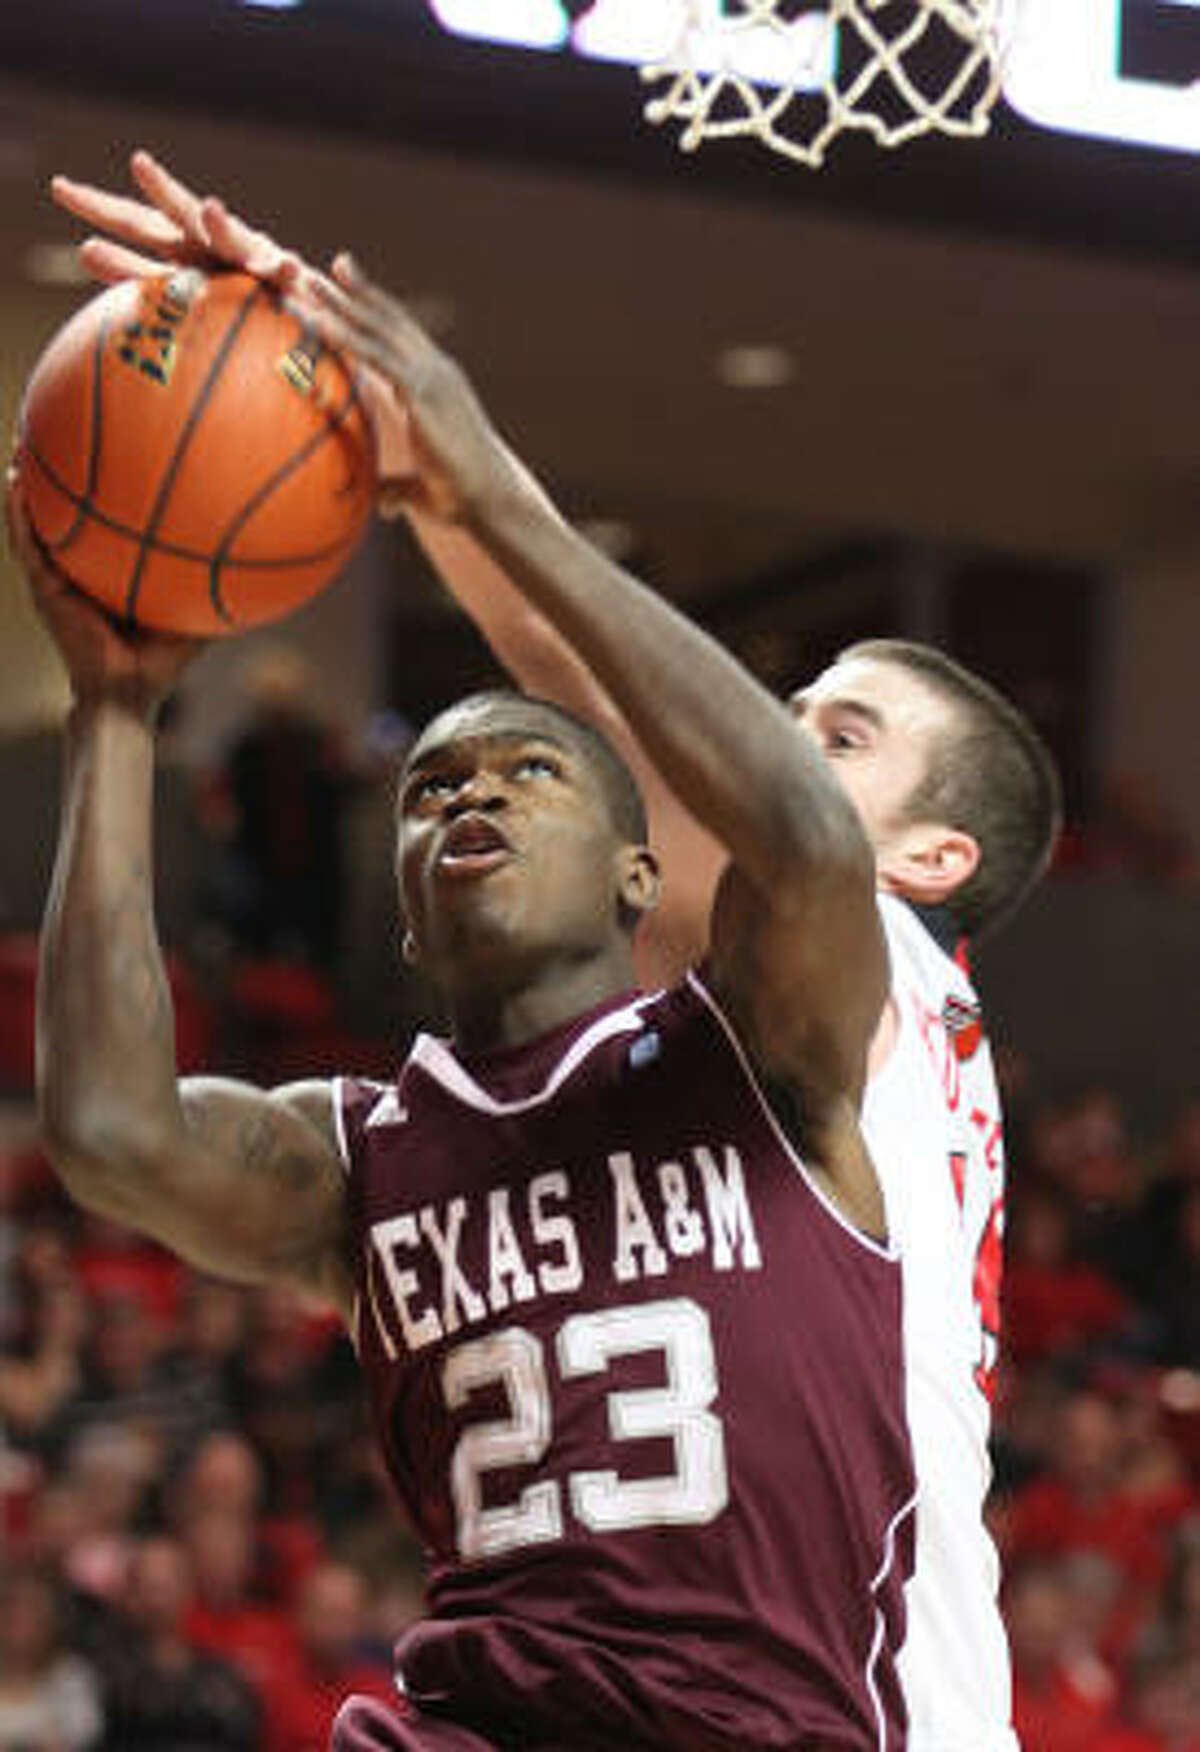 Texas A&M's Naji Hibbert has his shot blocked by Texas Tech's Robert Lewandowski.